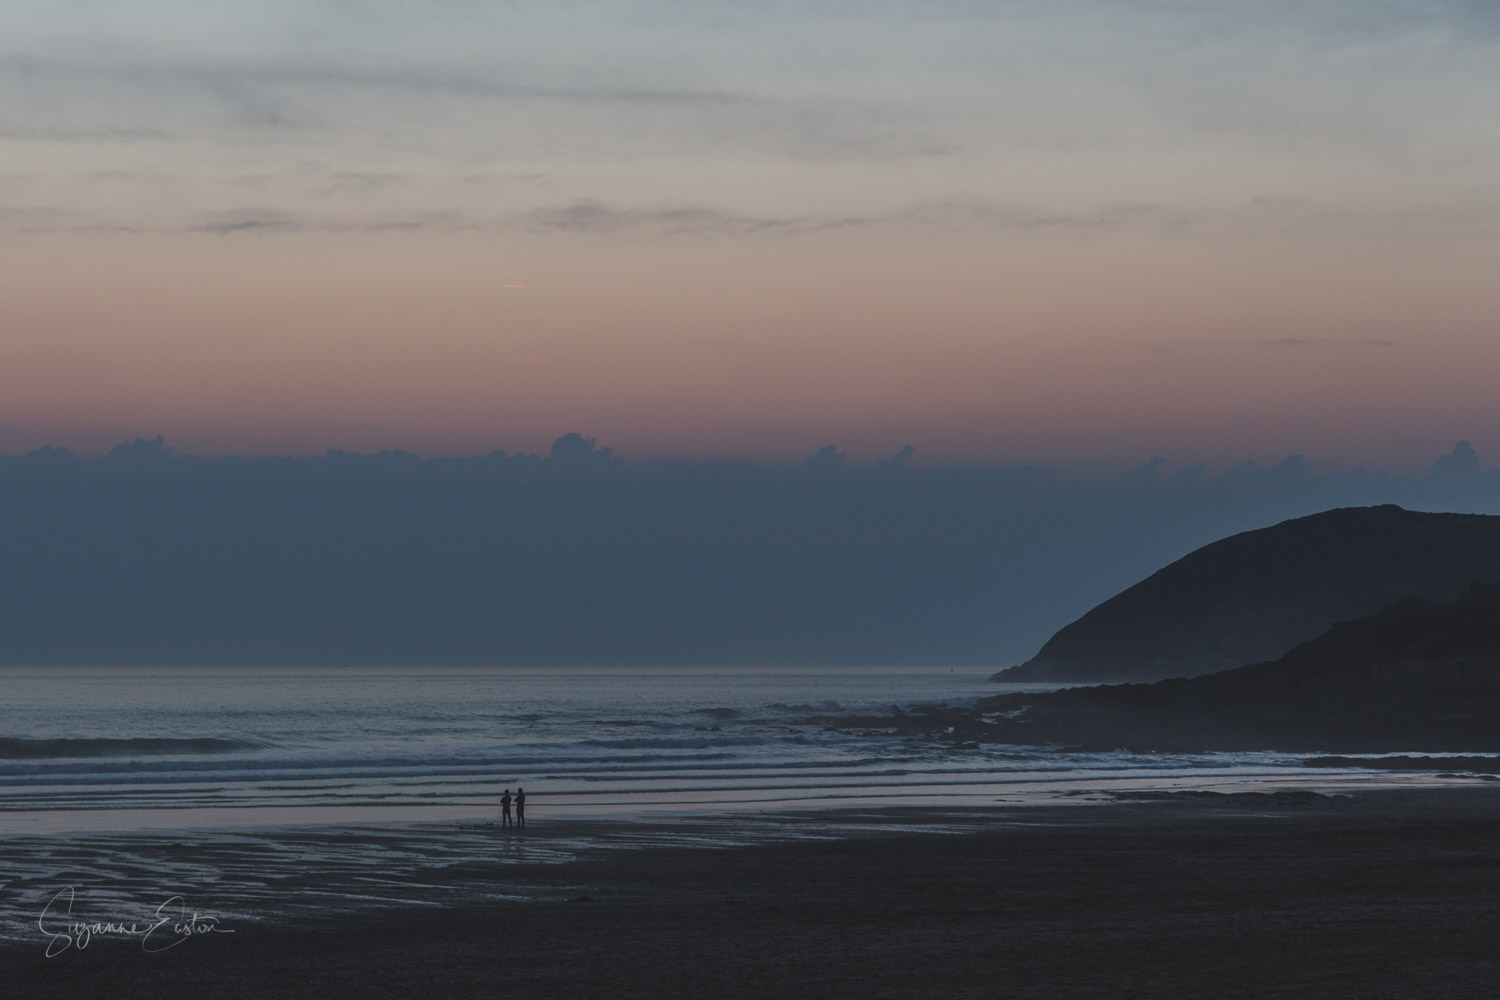 Watching the day end at Croyde Beach.  Two people talking as the sun sets